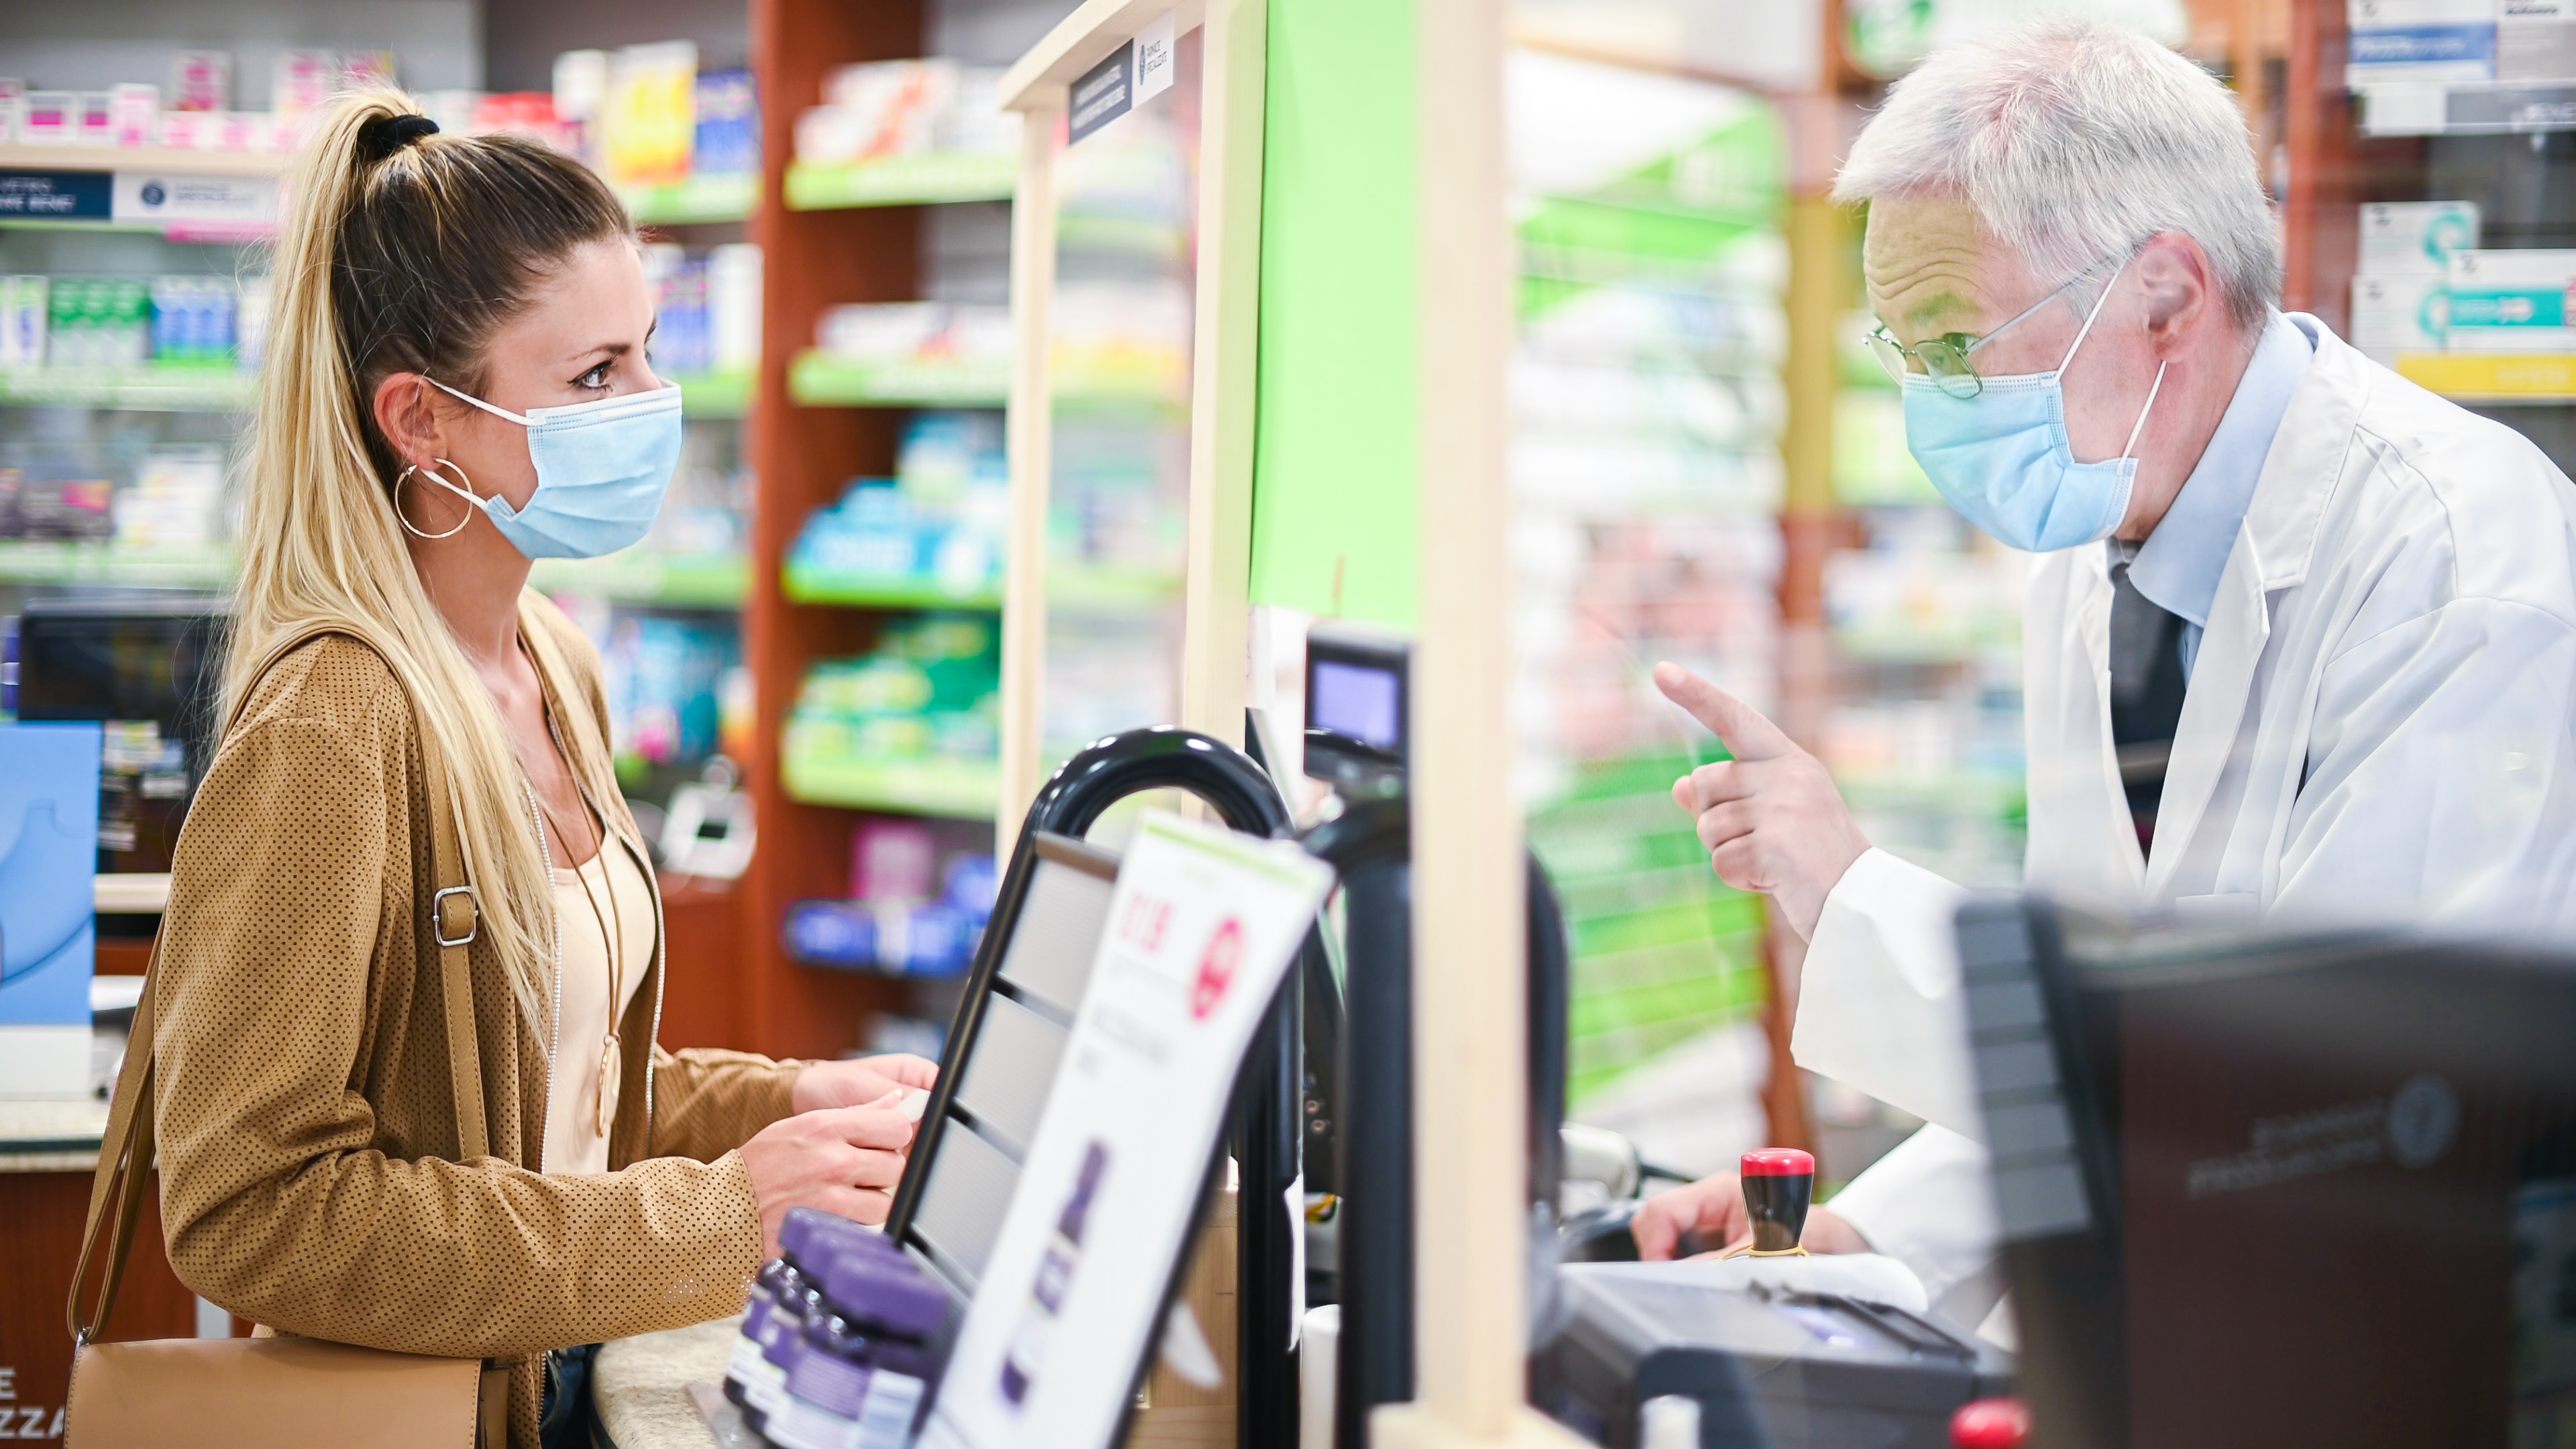 Why Retail Health Clinics Need a Stronger Cleaning Strategy